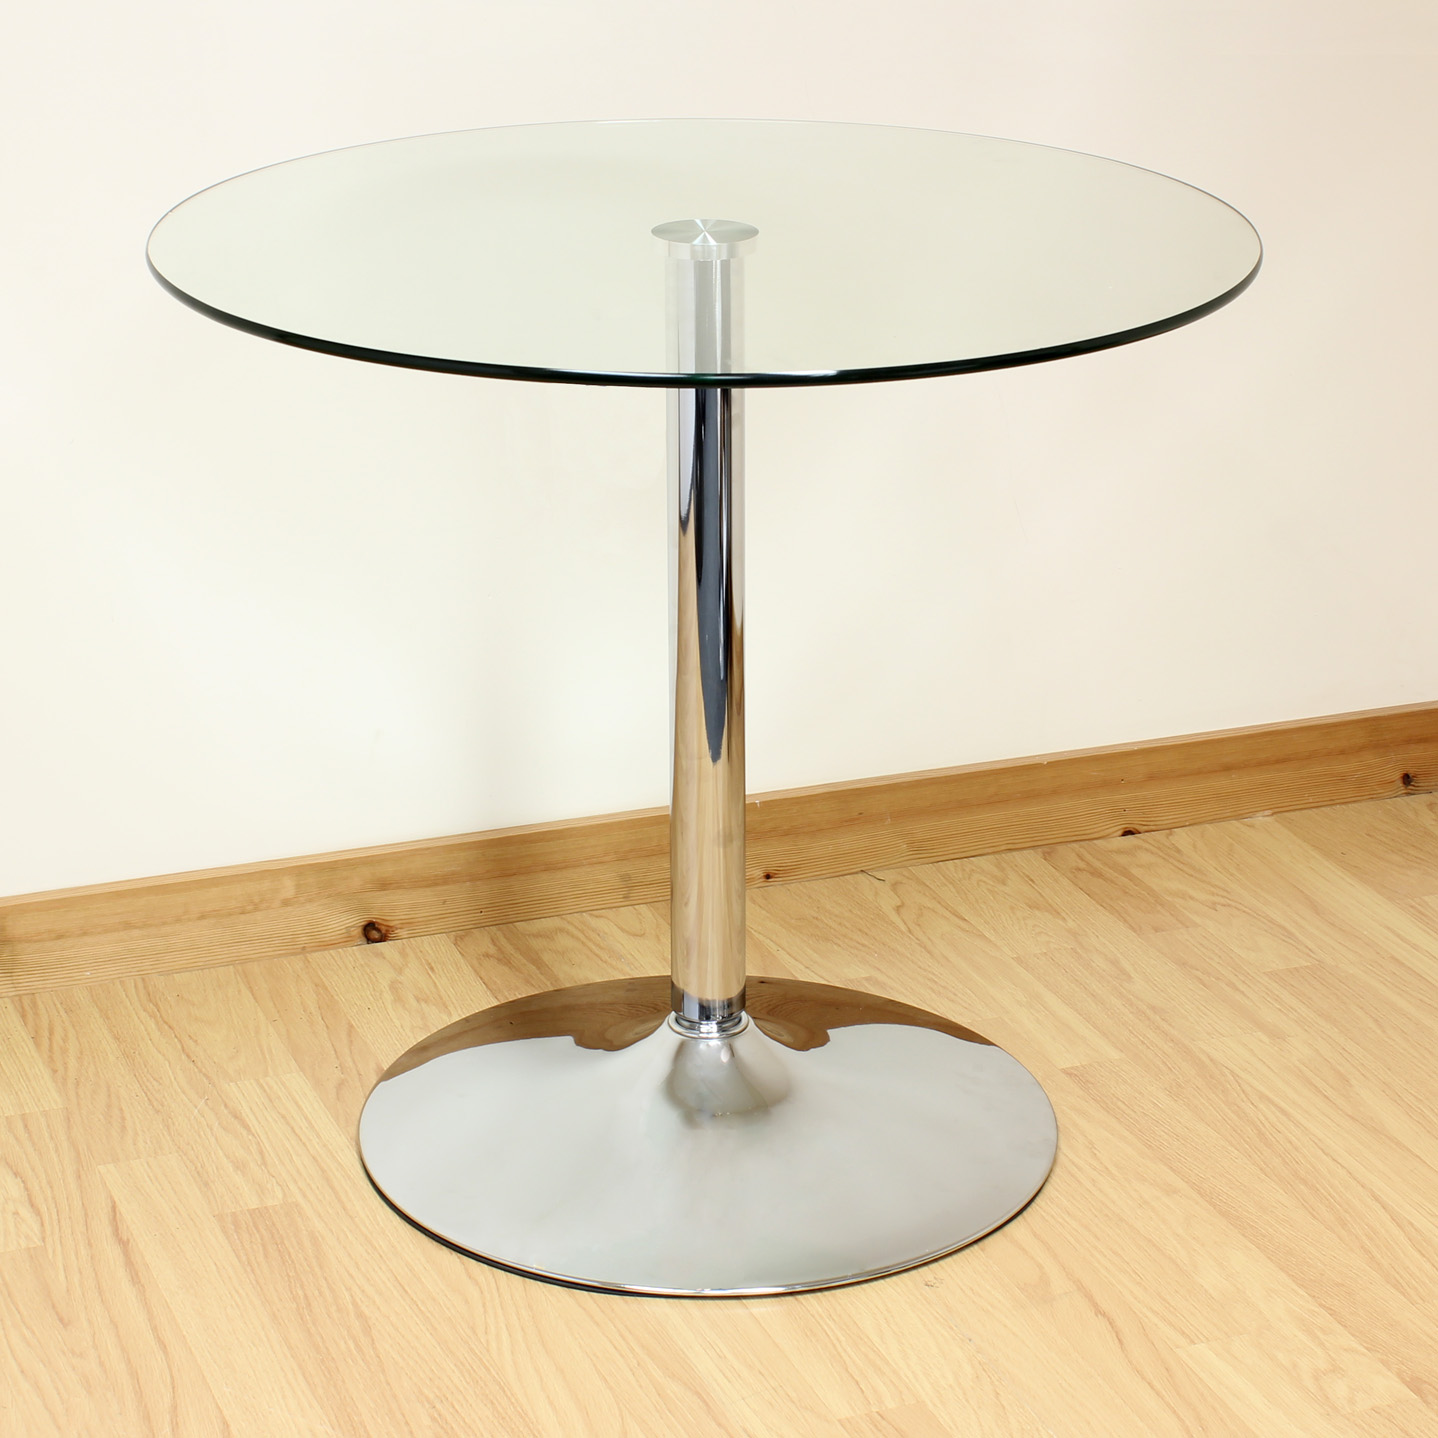 Sentinel Hartleys 80cm Clear Chrome Round Glass Dining Kitchen Table Bistro Cafe Style